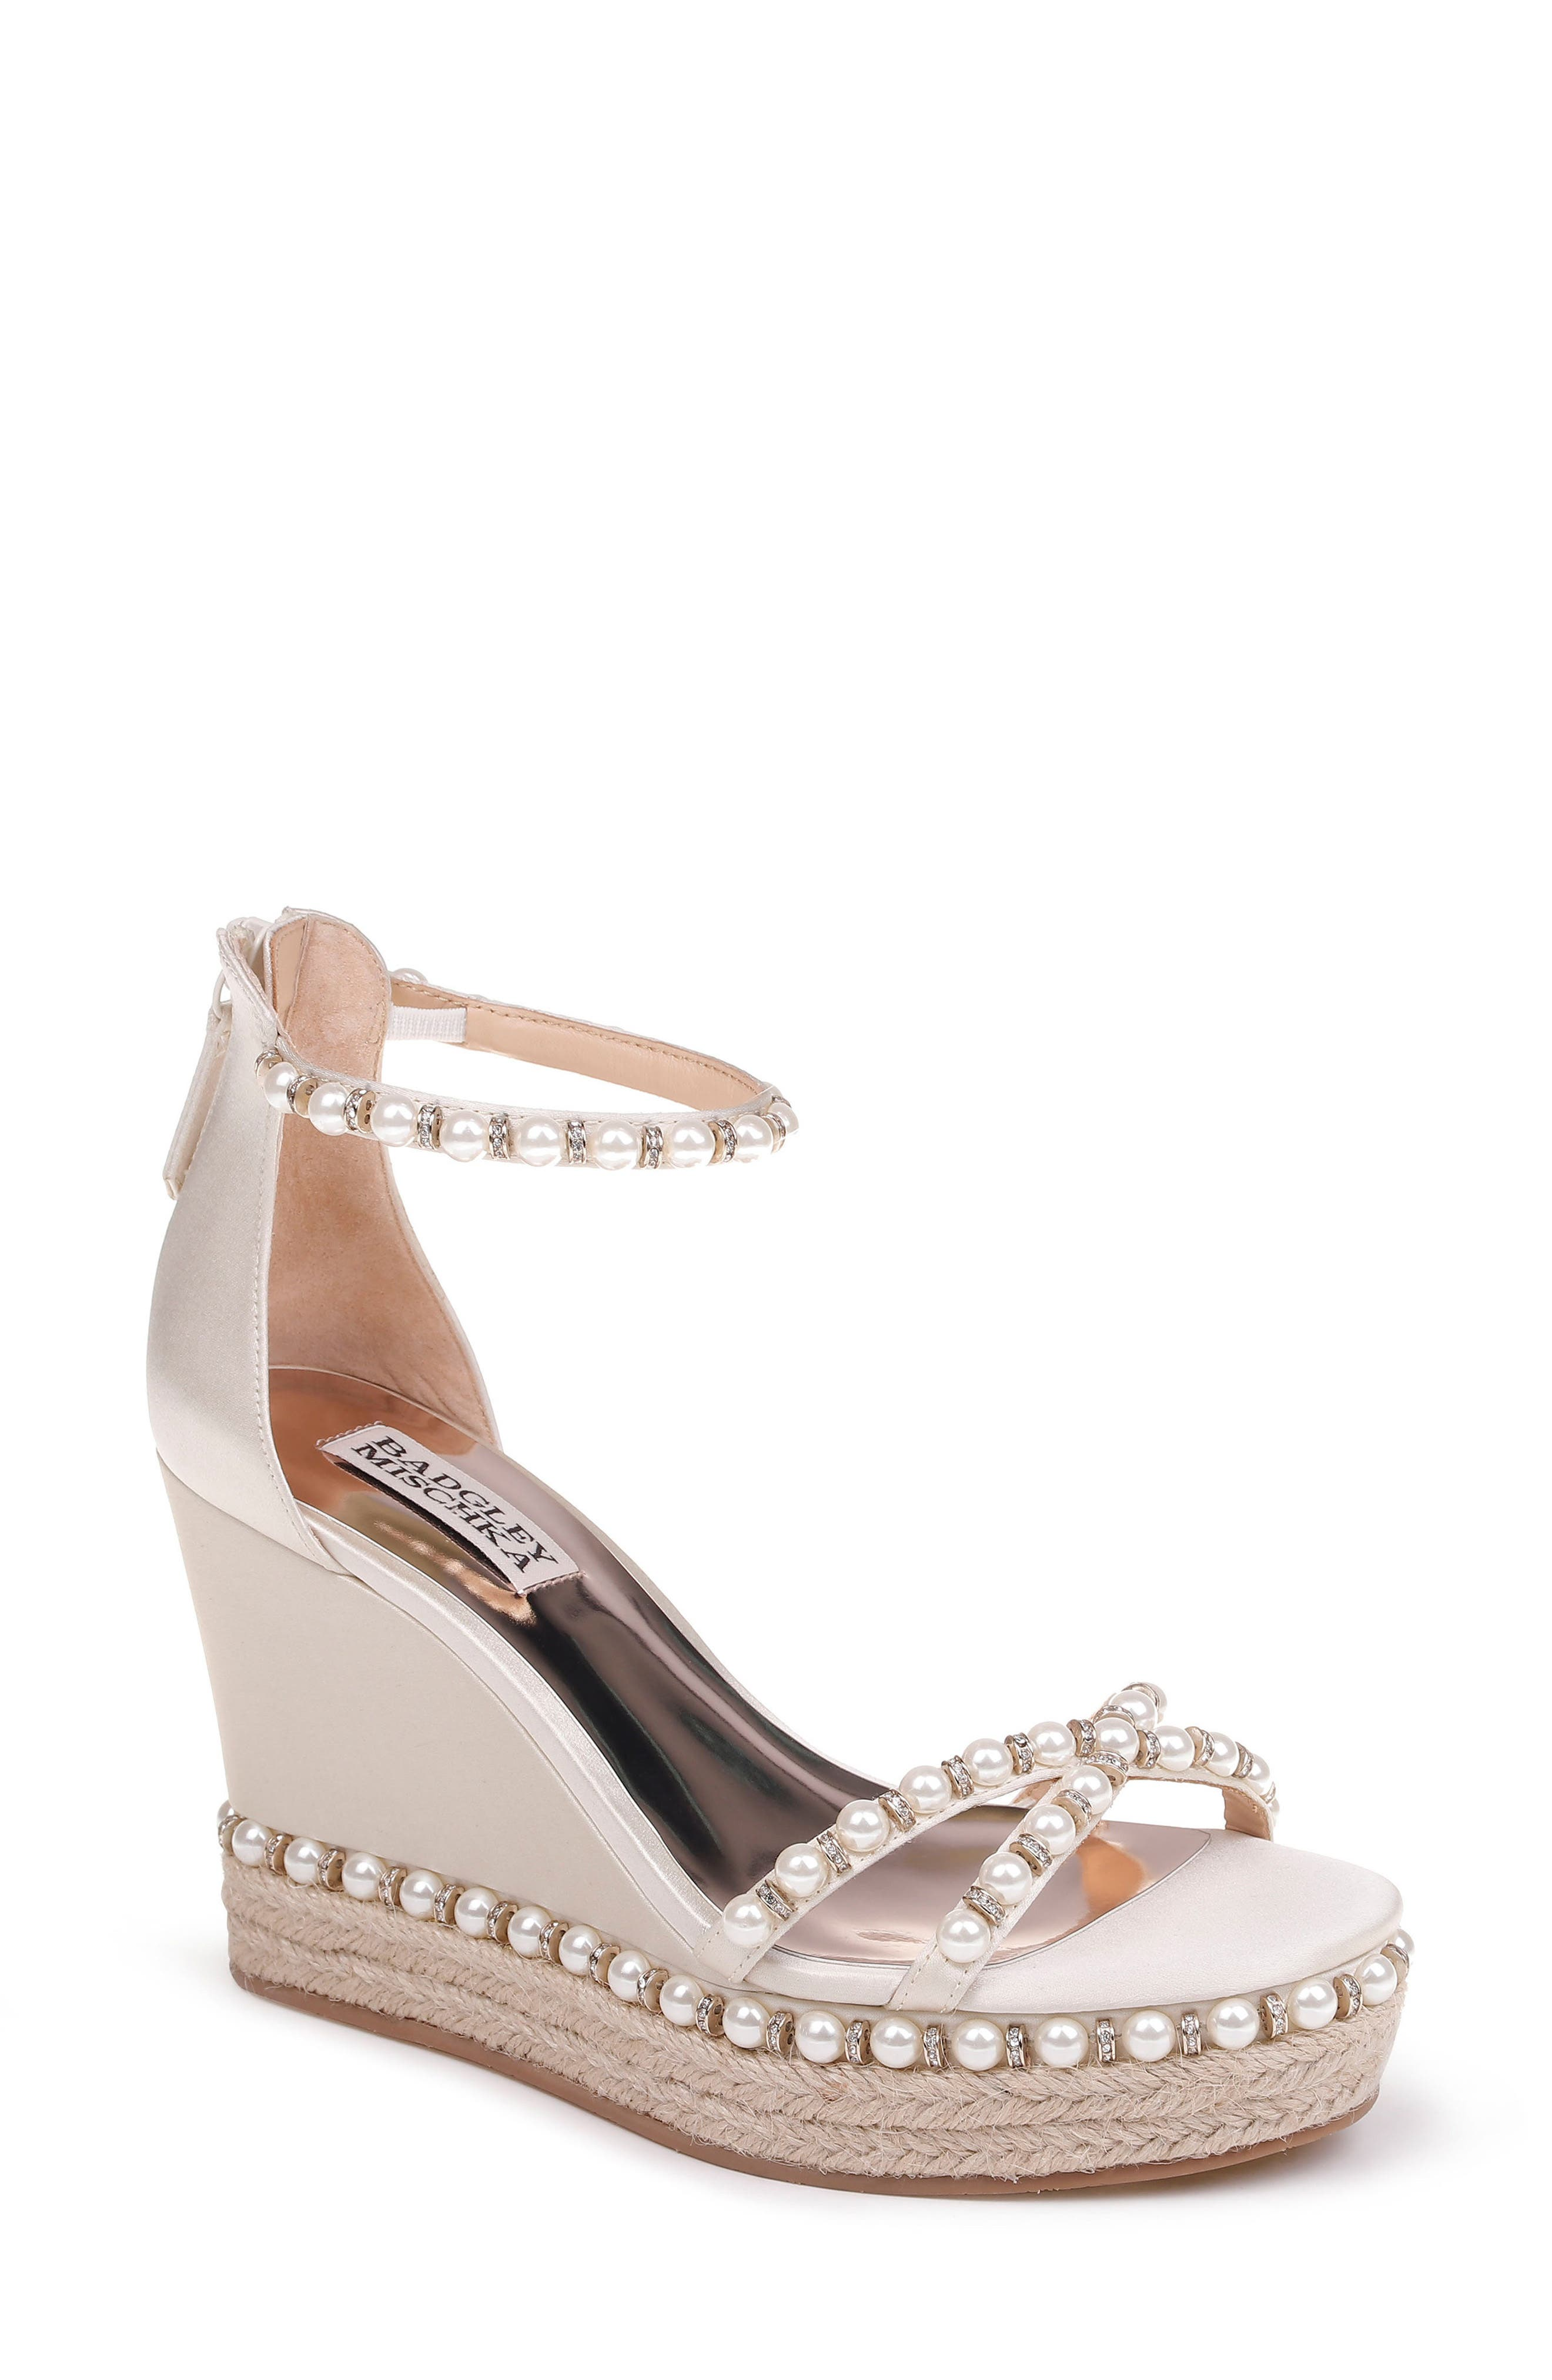 Sloan Wedge Sandal,                         Main,                         color, Ivory Satin